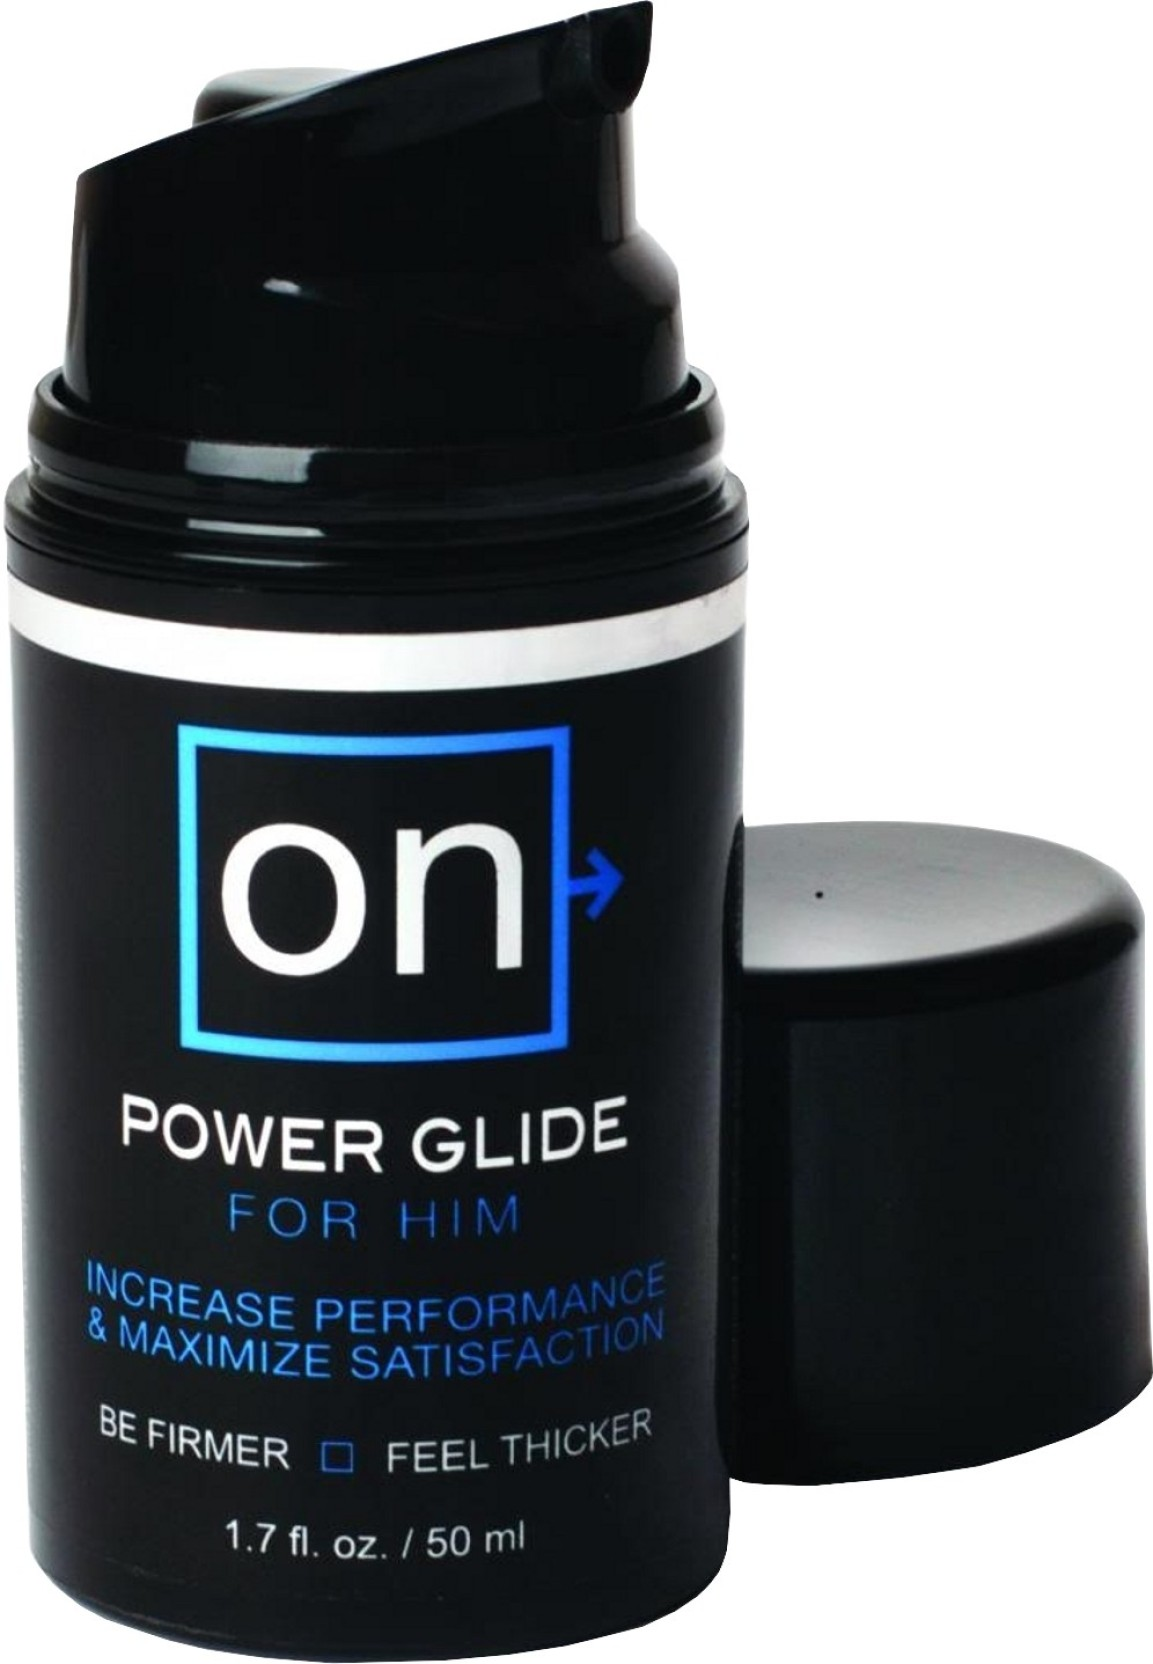 Sensuva On Power Glide for Him Pleasure Enhancement Price in